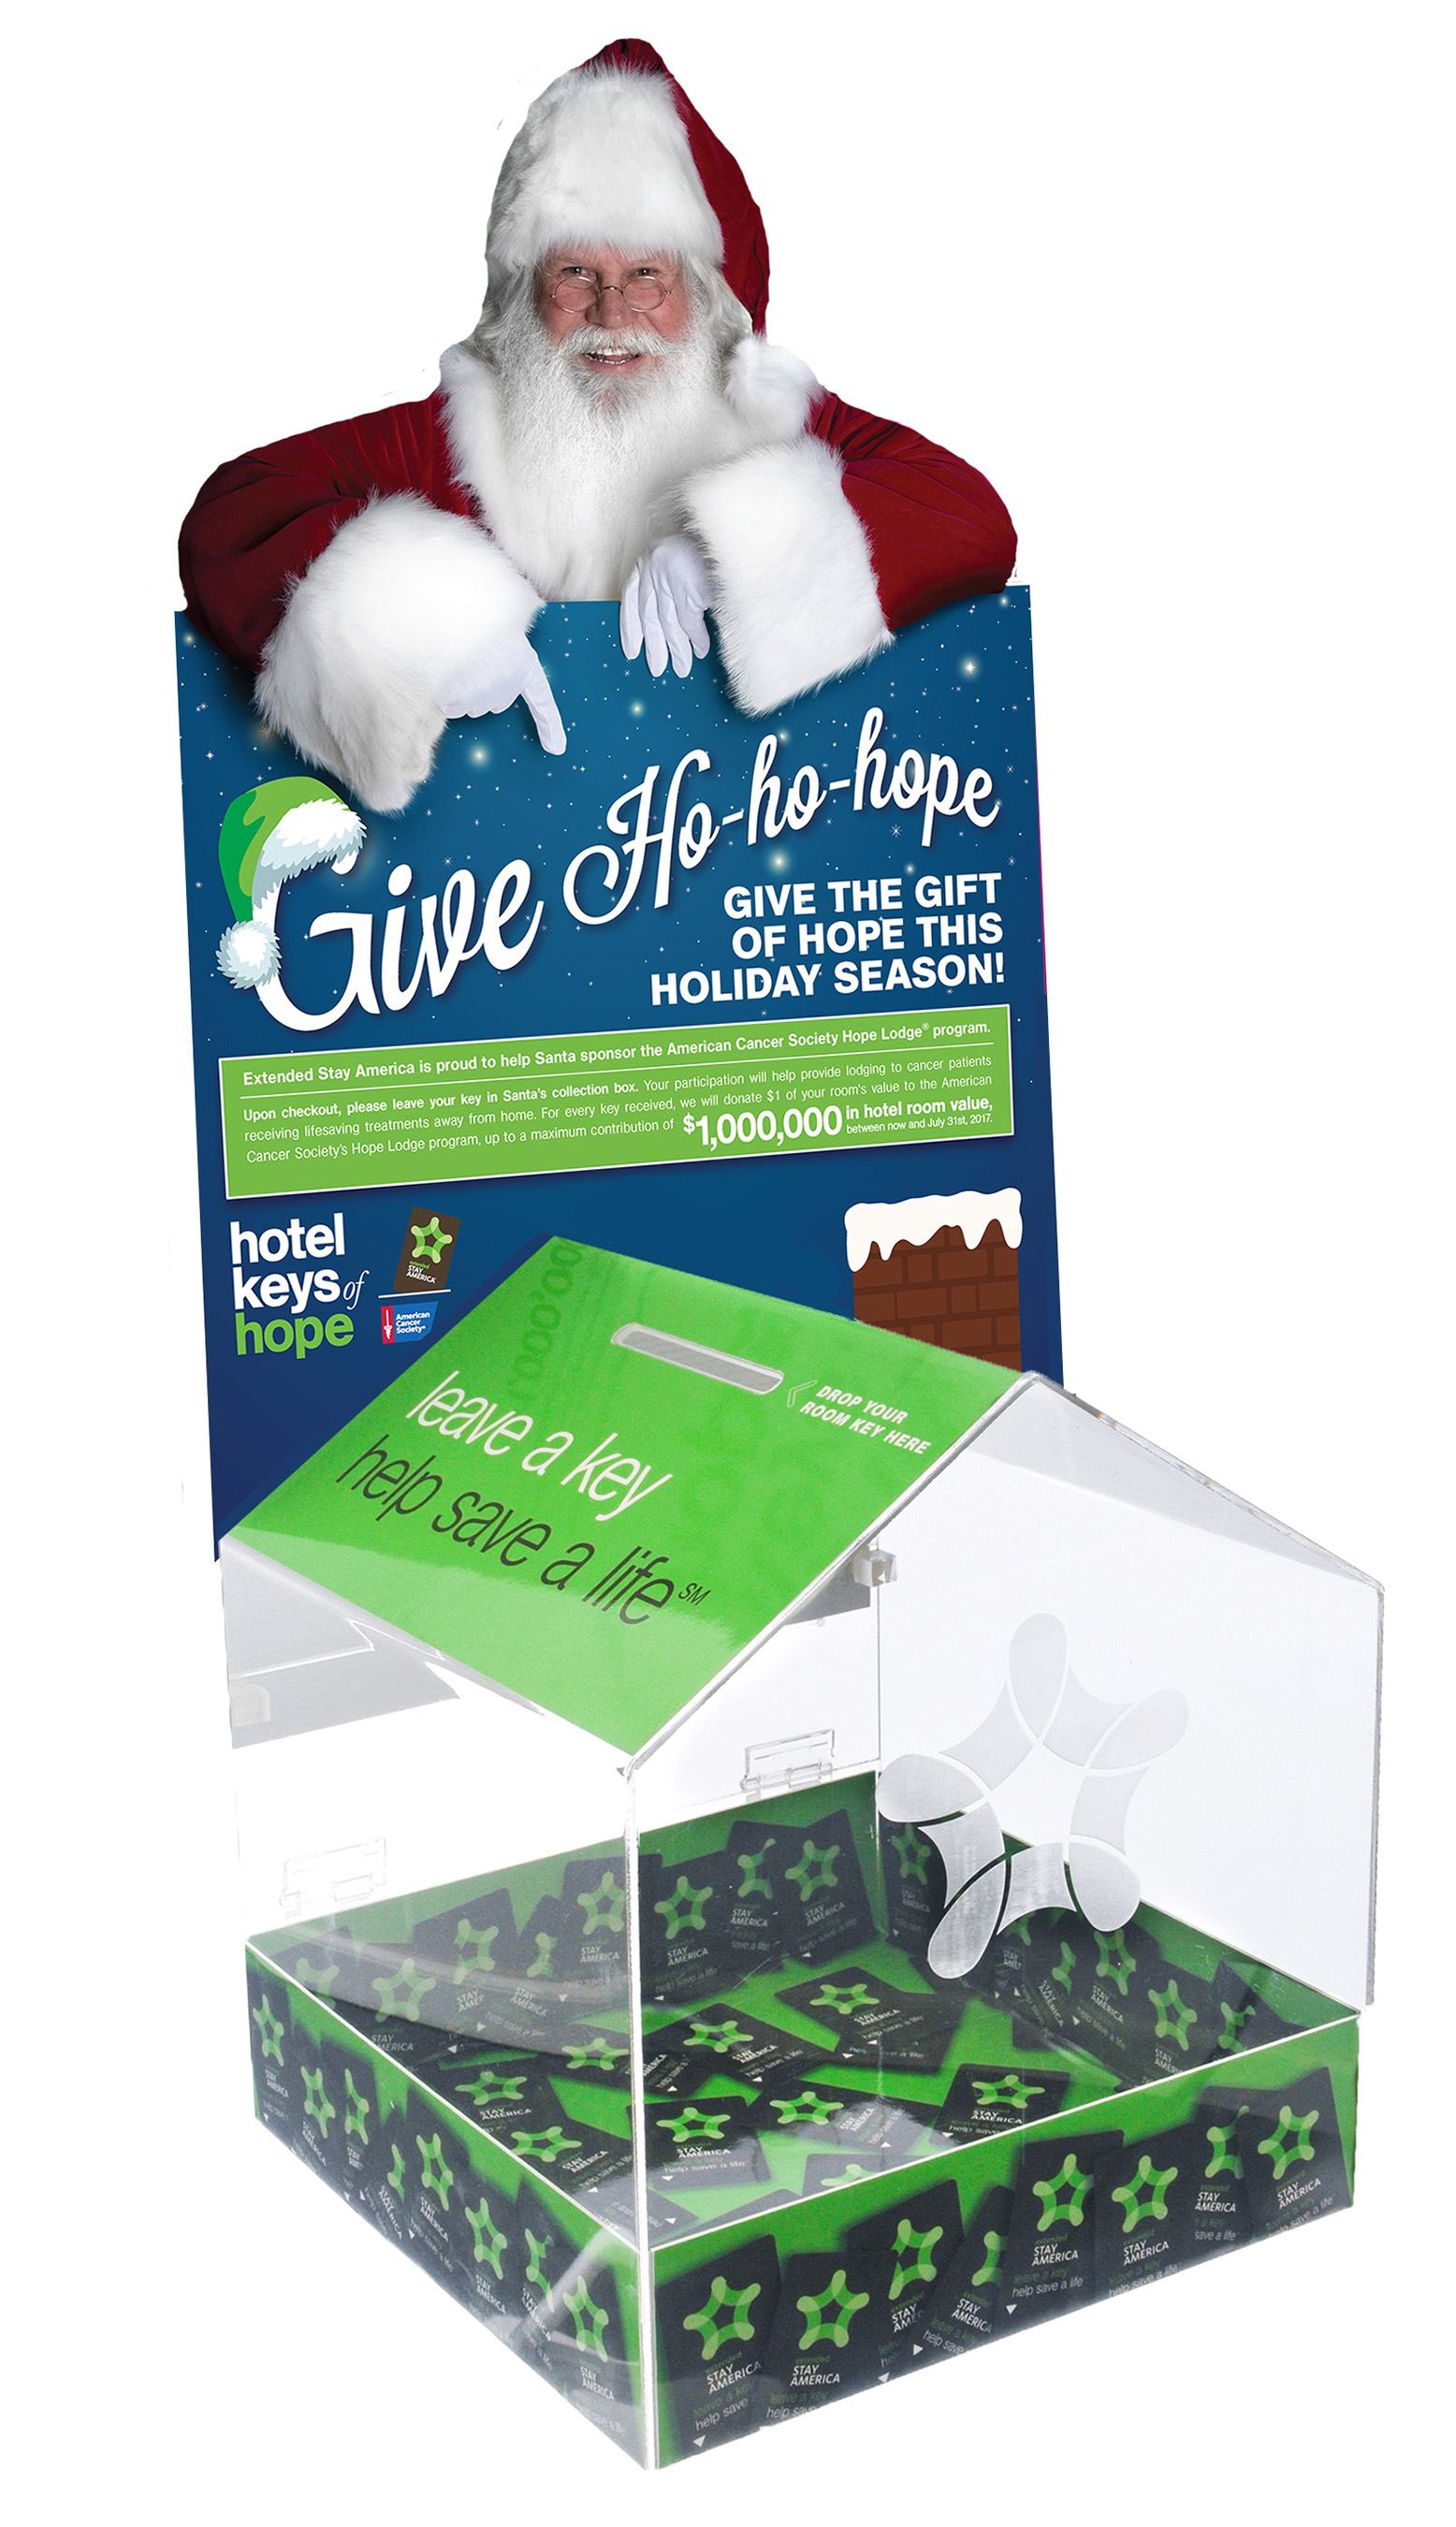 Leave a key, help save a life.™ donation boxes in every hotel encourage guests to Give Ho-ho-hope and participate in room donation program with the America Cancer Society.